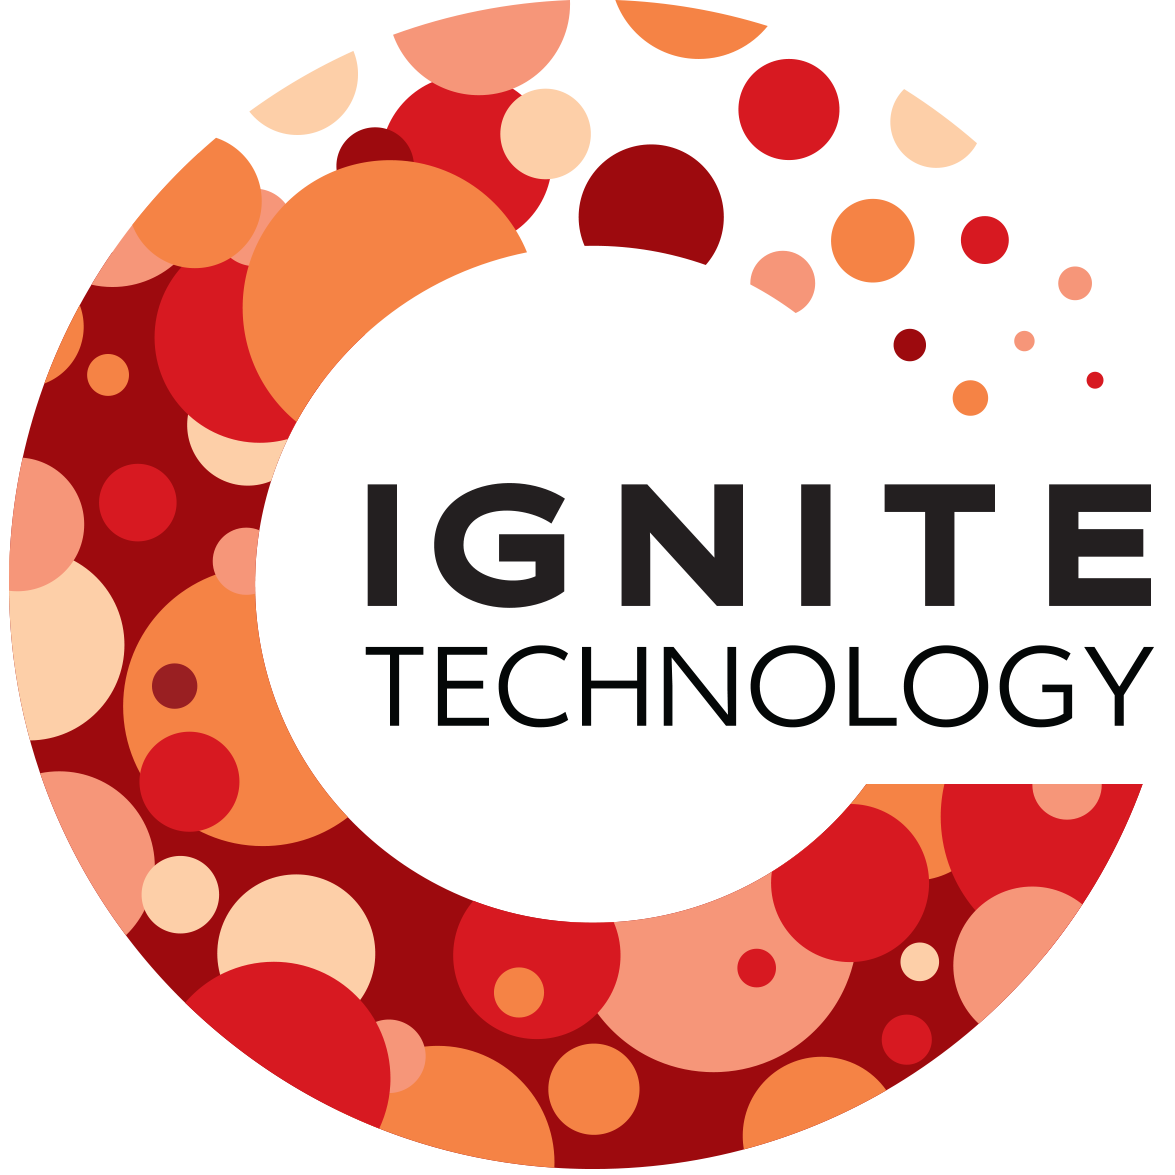 Ignite techology